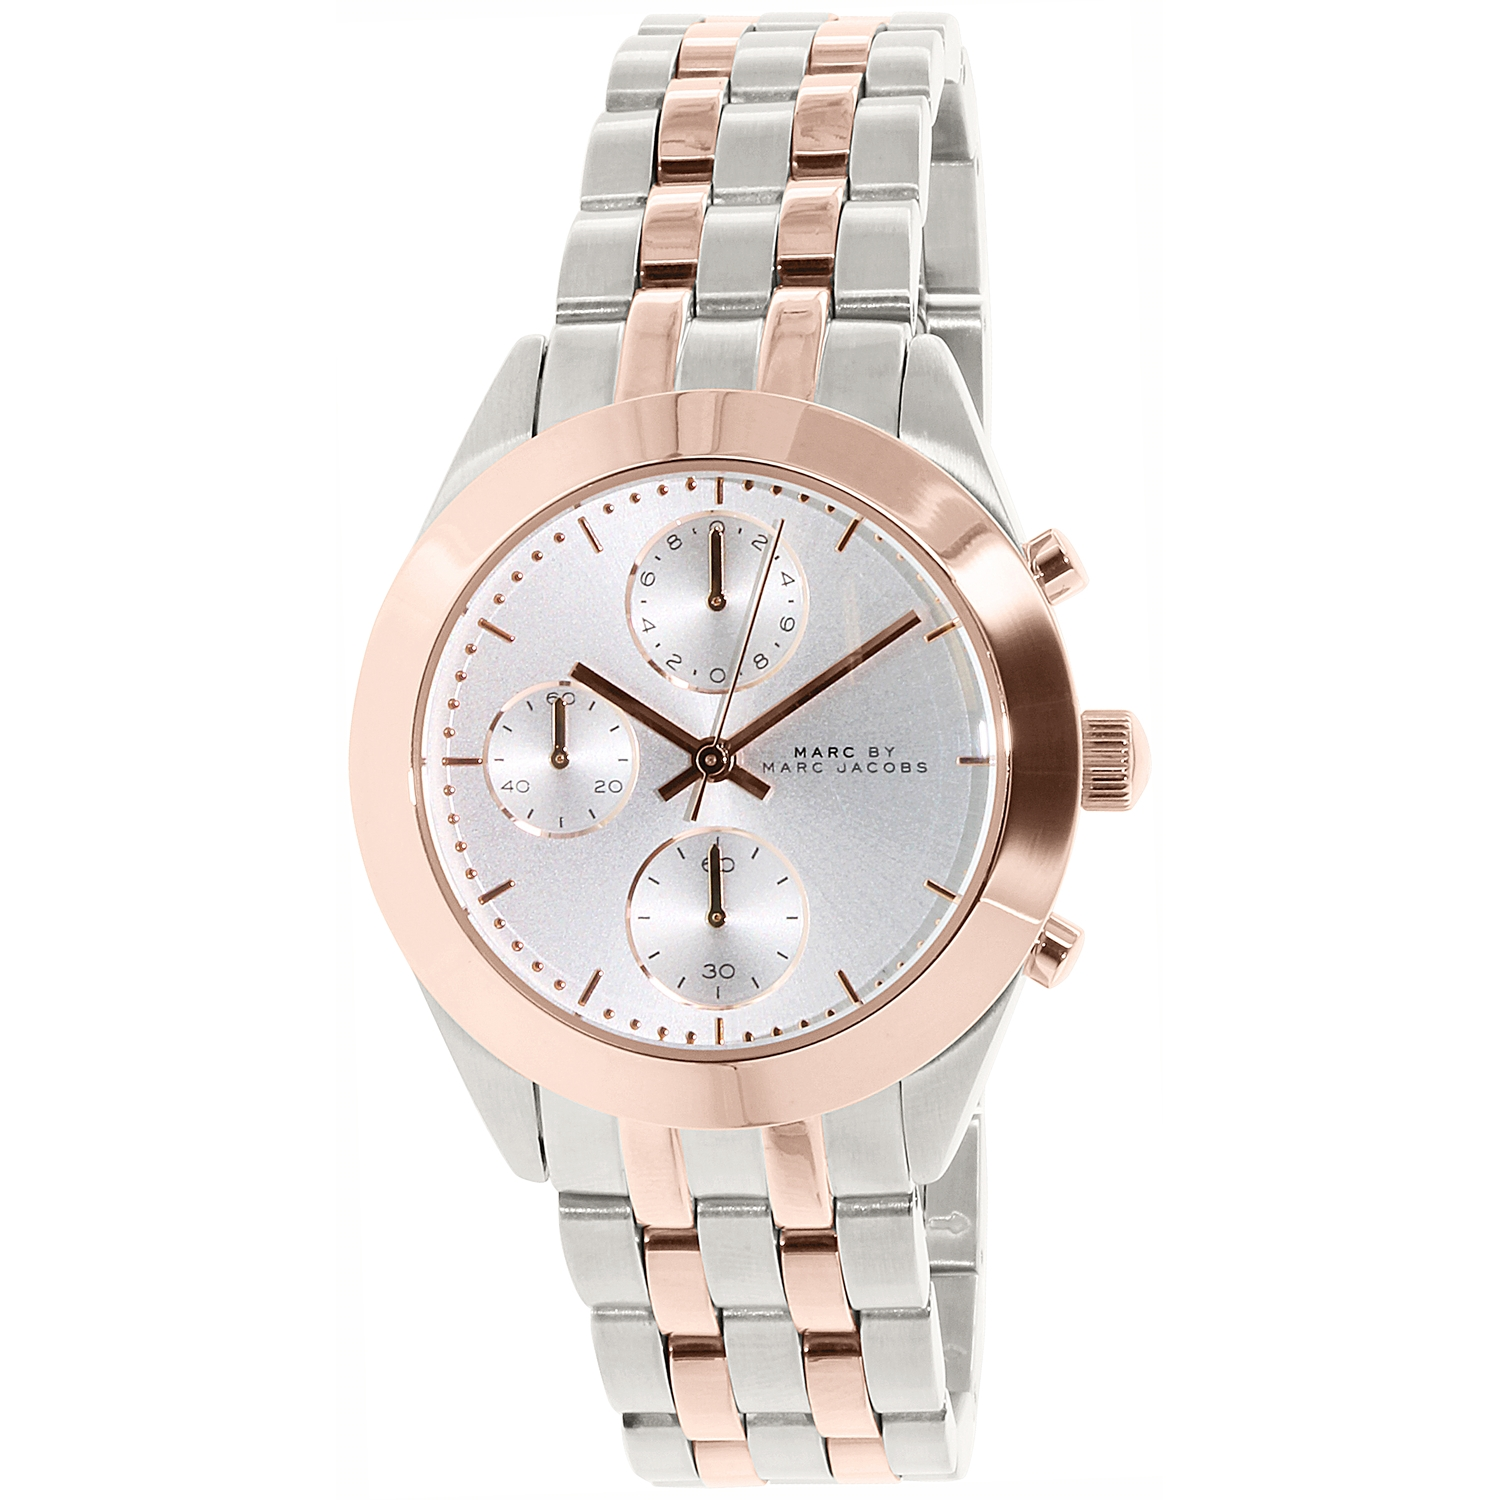 Women's Peeker MBM3369 Rose Gold Stainless-Steel Quartz Watch